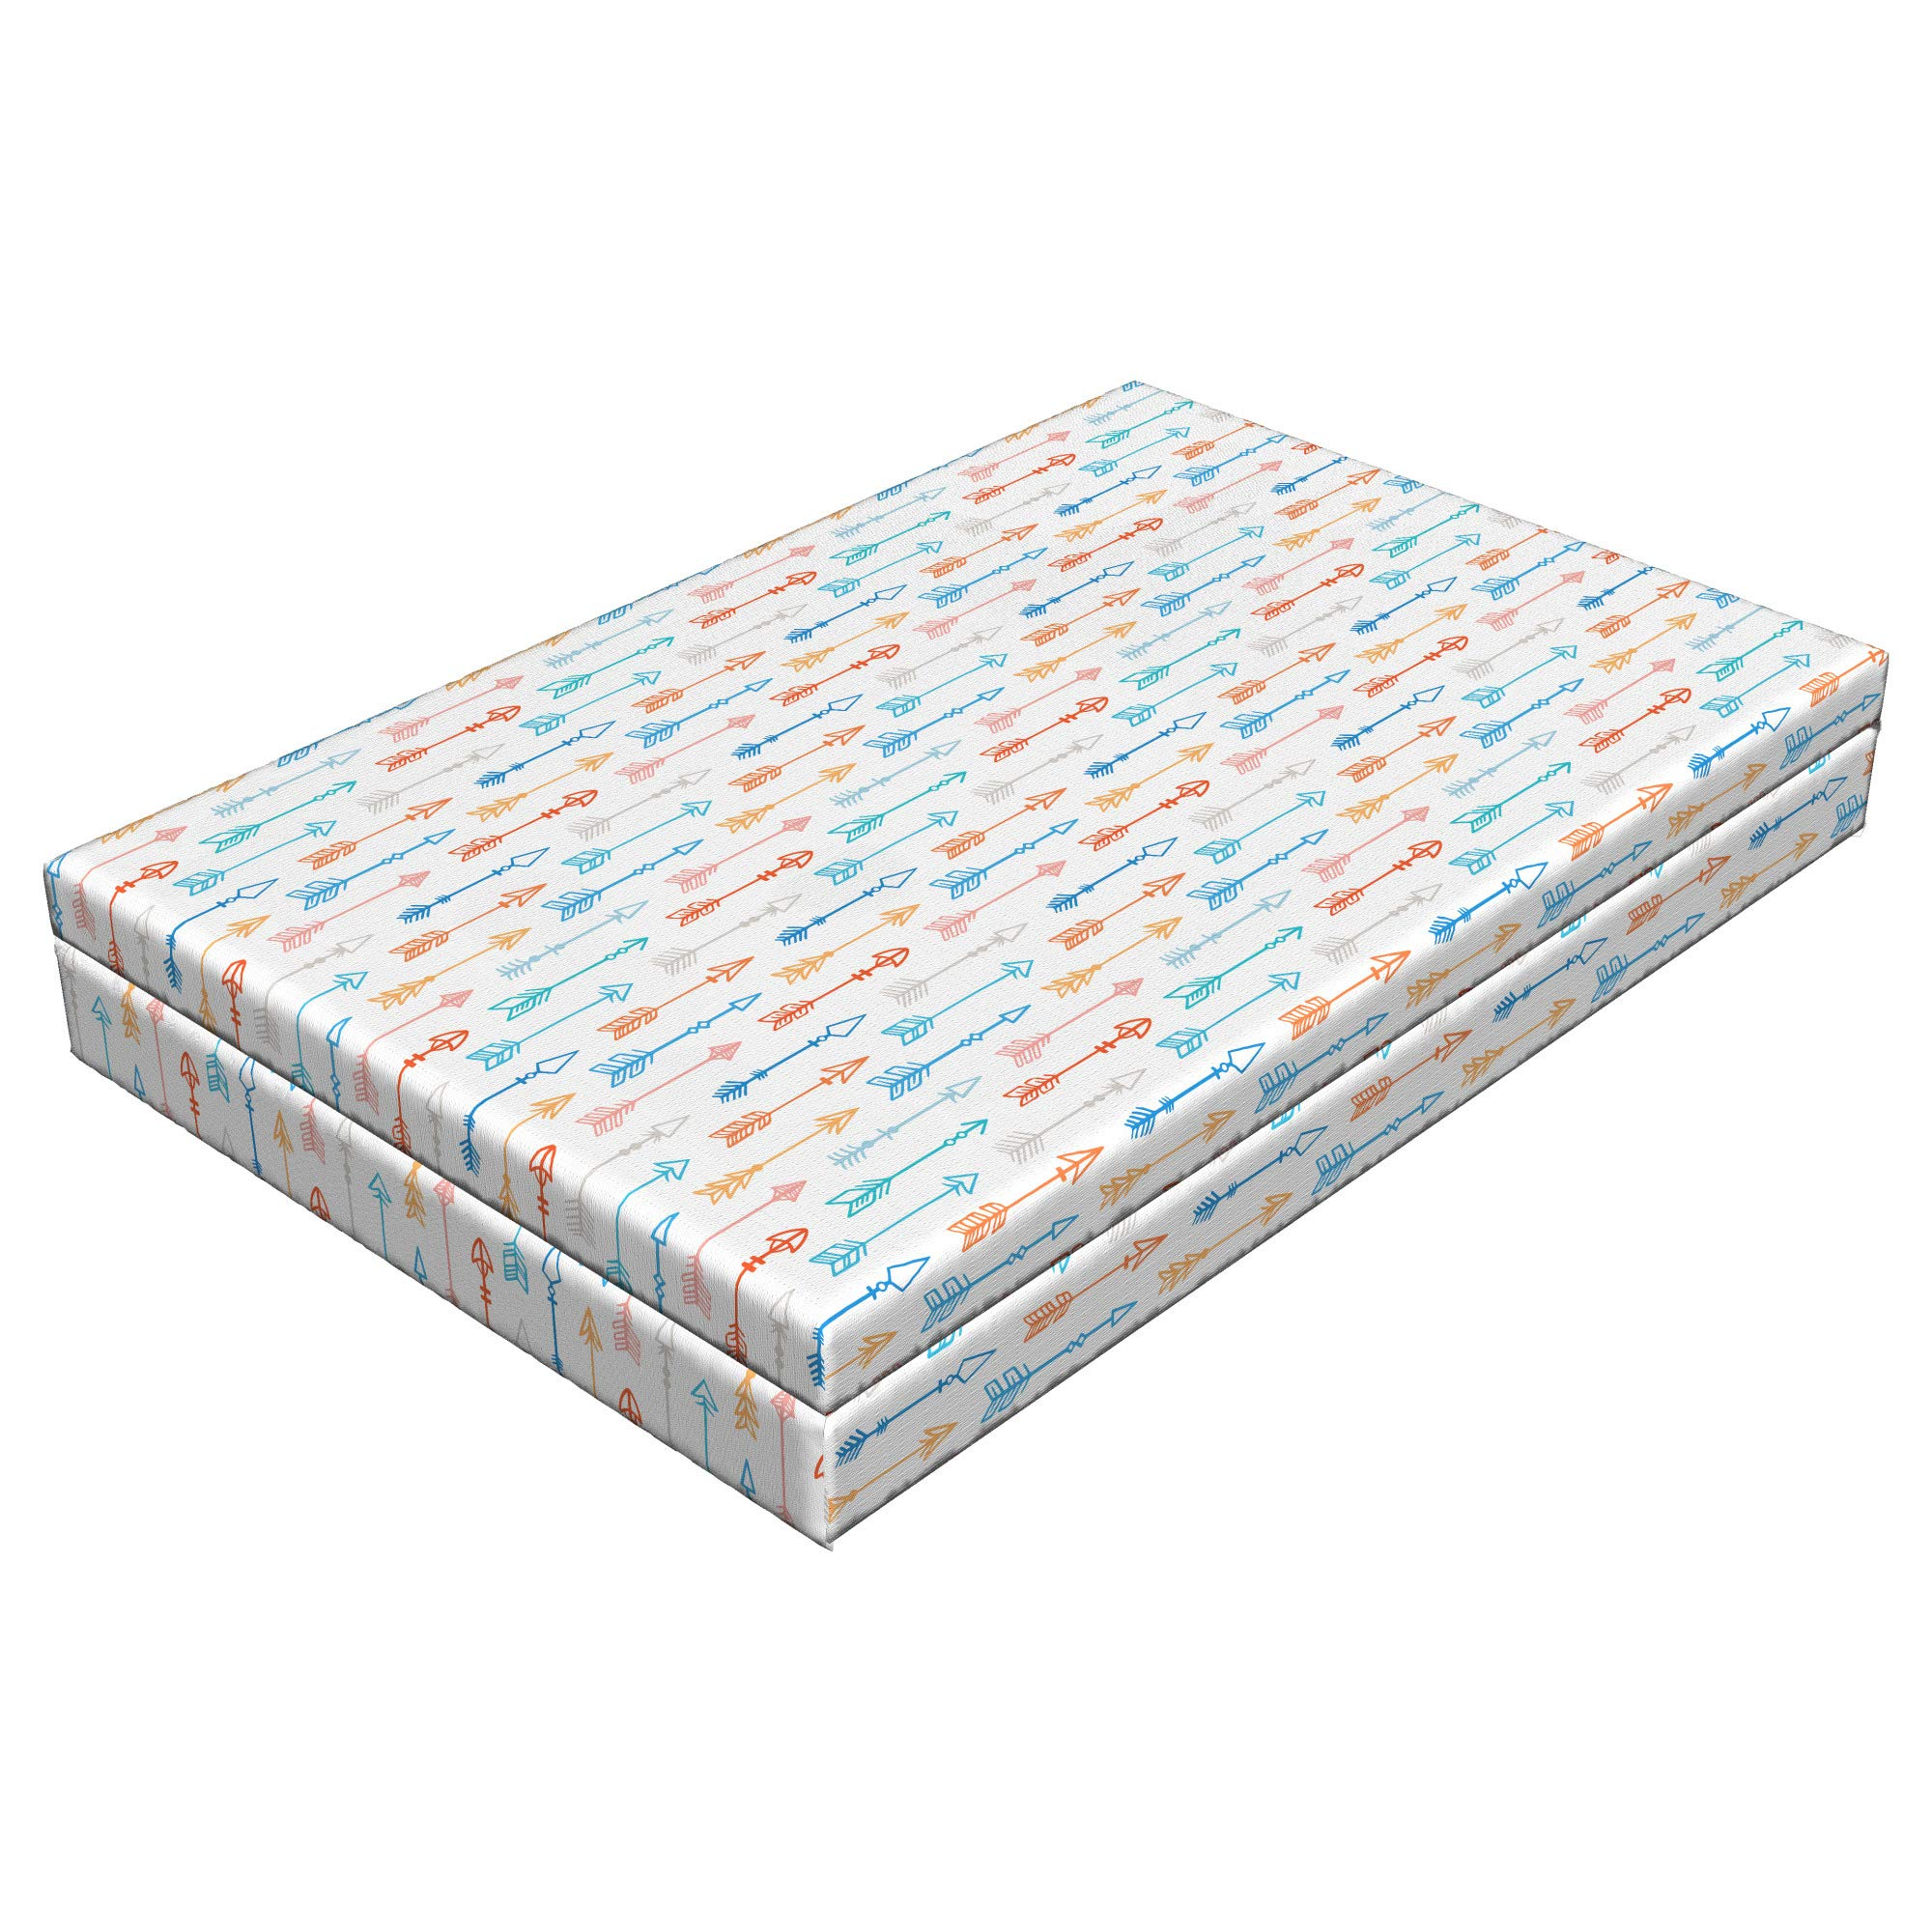 Lunarable Arrow Dog Bed, Colorful Arrow Patterns Historical Old Fashioned Tool Traditional Vertical Art Print, Durable Washable Mat with Decorative Fabric Cover, 48'' x 32'' x 6'', Multicolor